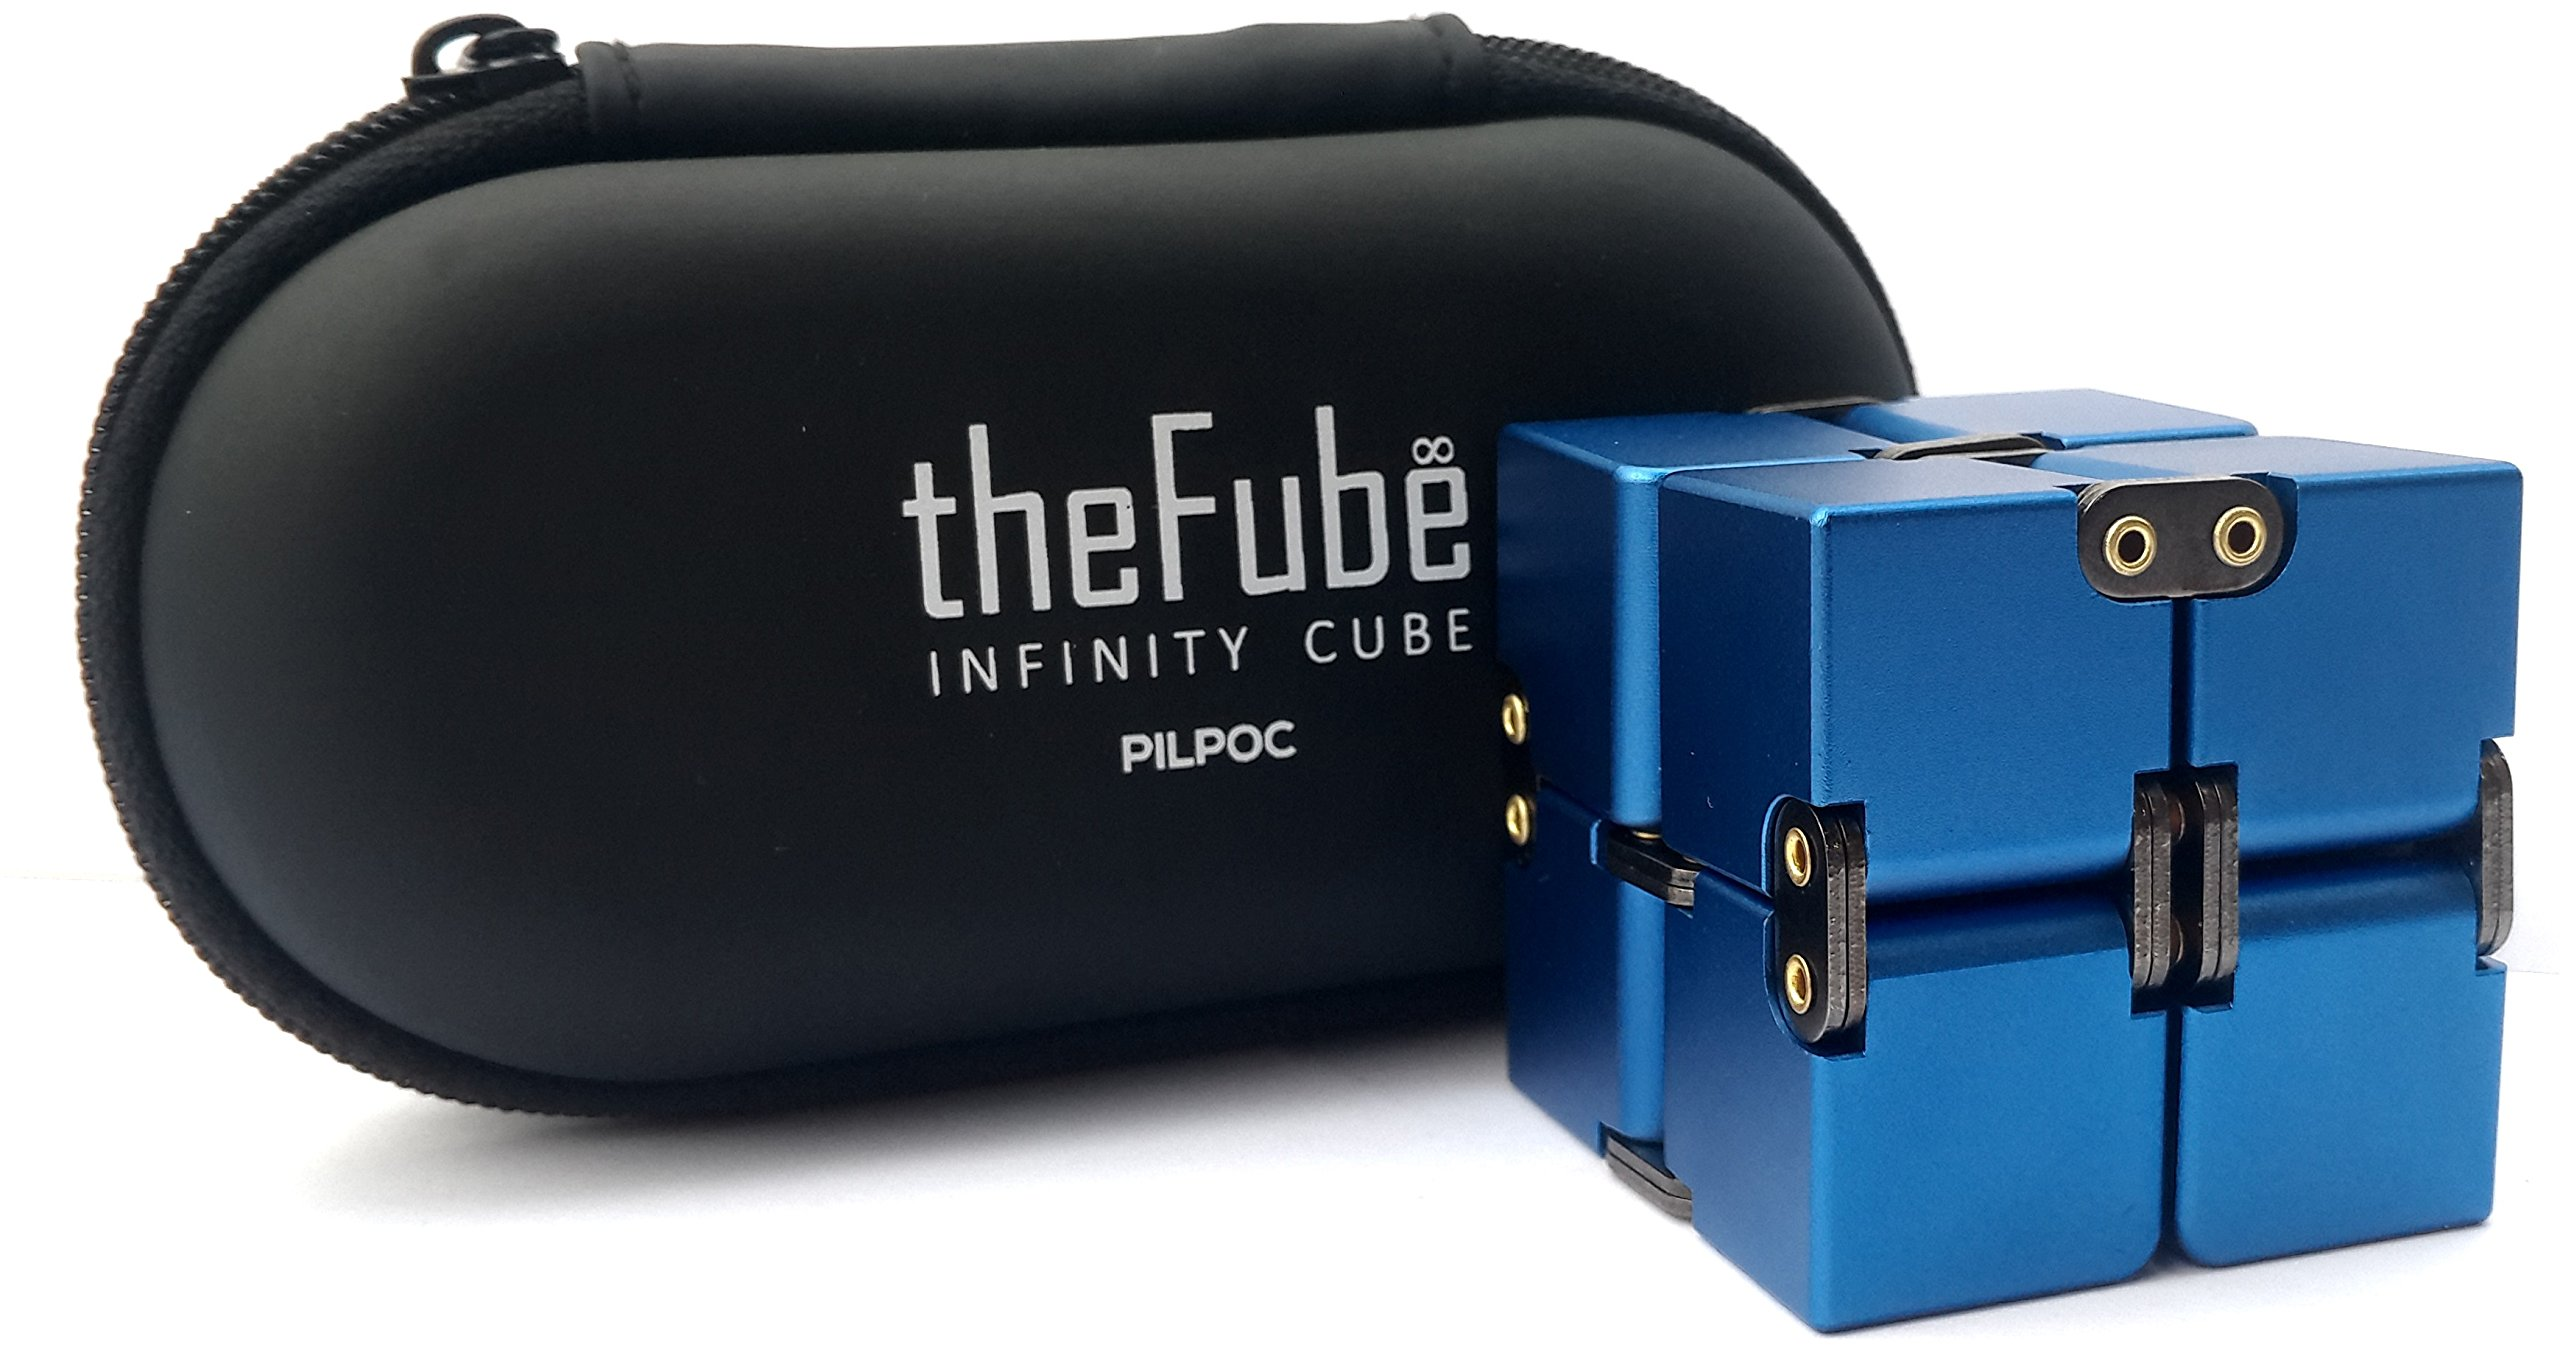 PILPOC theFube Infinity Cube Fidget Cube Desk Toy - Premium Quality Aluminum Infinite Magic Cube with Exclusive Case, Sturdy, Heavy, Relieve Stress and Anxiety, for ADD, ADHD, OCD (Blue)